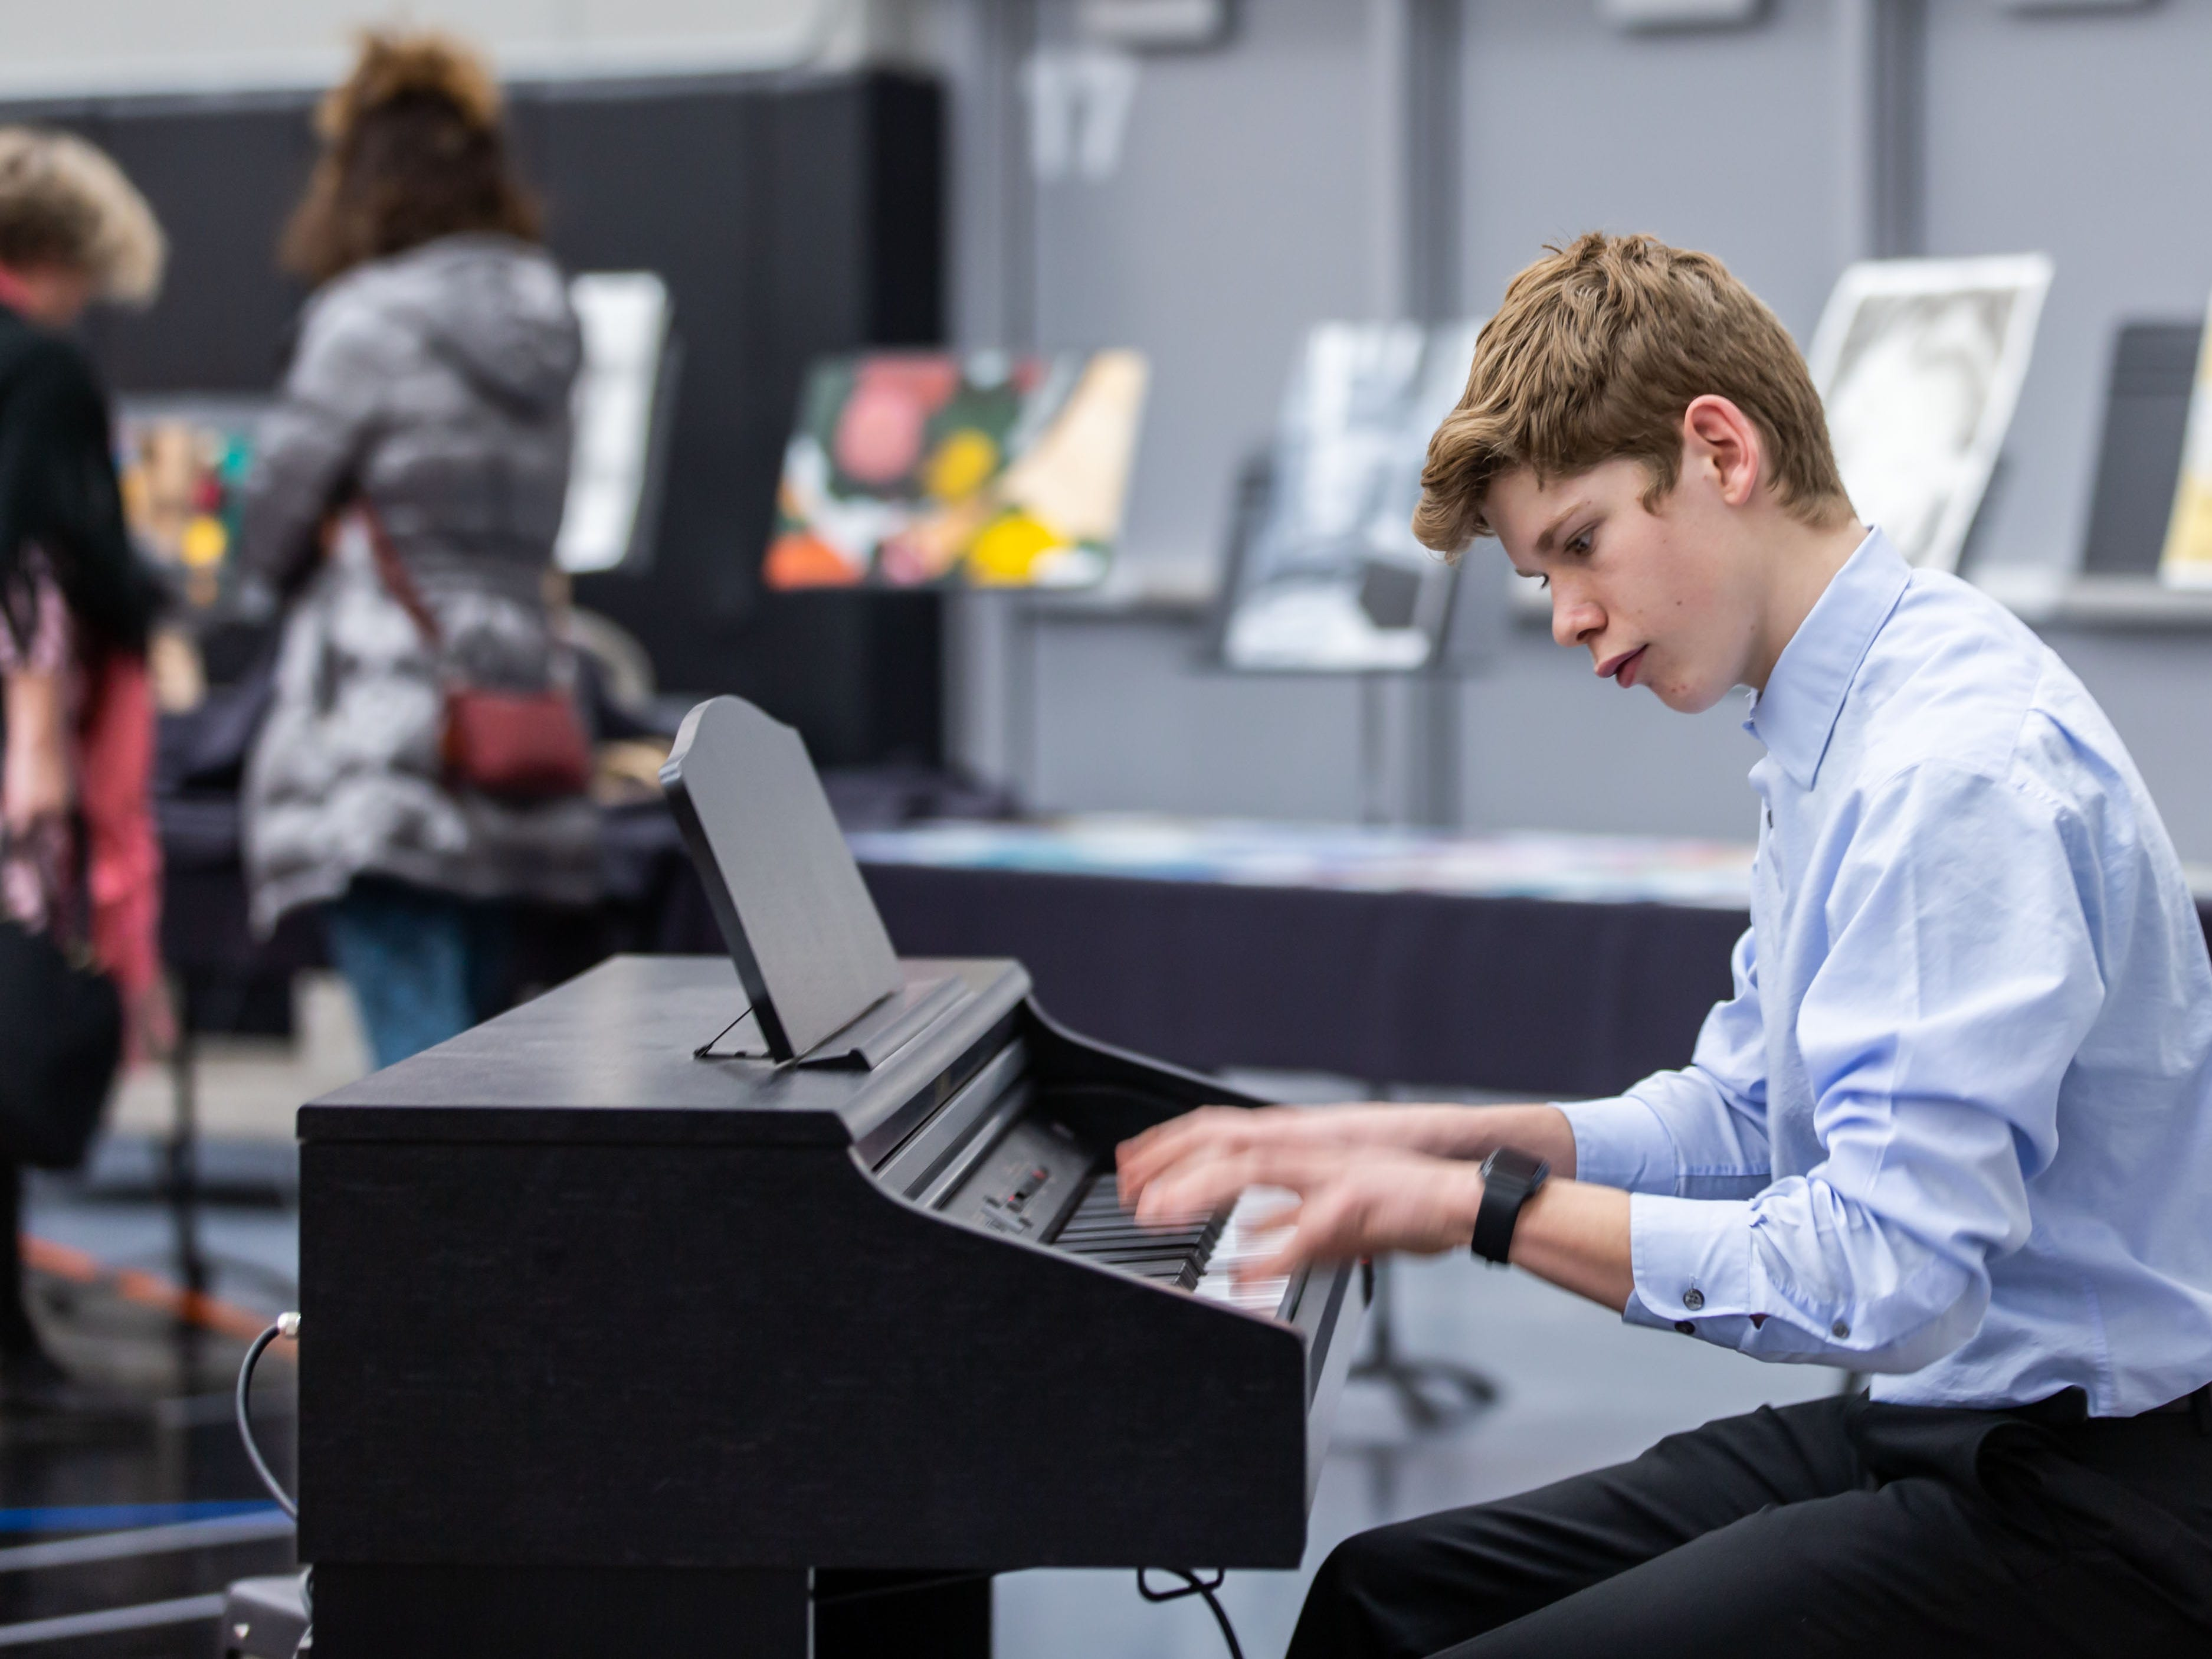 Sophomore Breck Golden entertains attendees during the 7th annual Art in the Burg art fair at Cedarburg High School (CHS) on Saturday, March 9, 2019. The event, sponsored by the CHS Fine Arts Boosters and Art Department, features 75 artists from the midwest exhibiting and selling original work in many artistic disciplines.